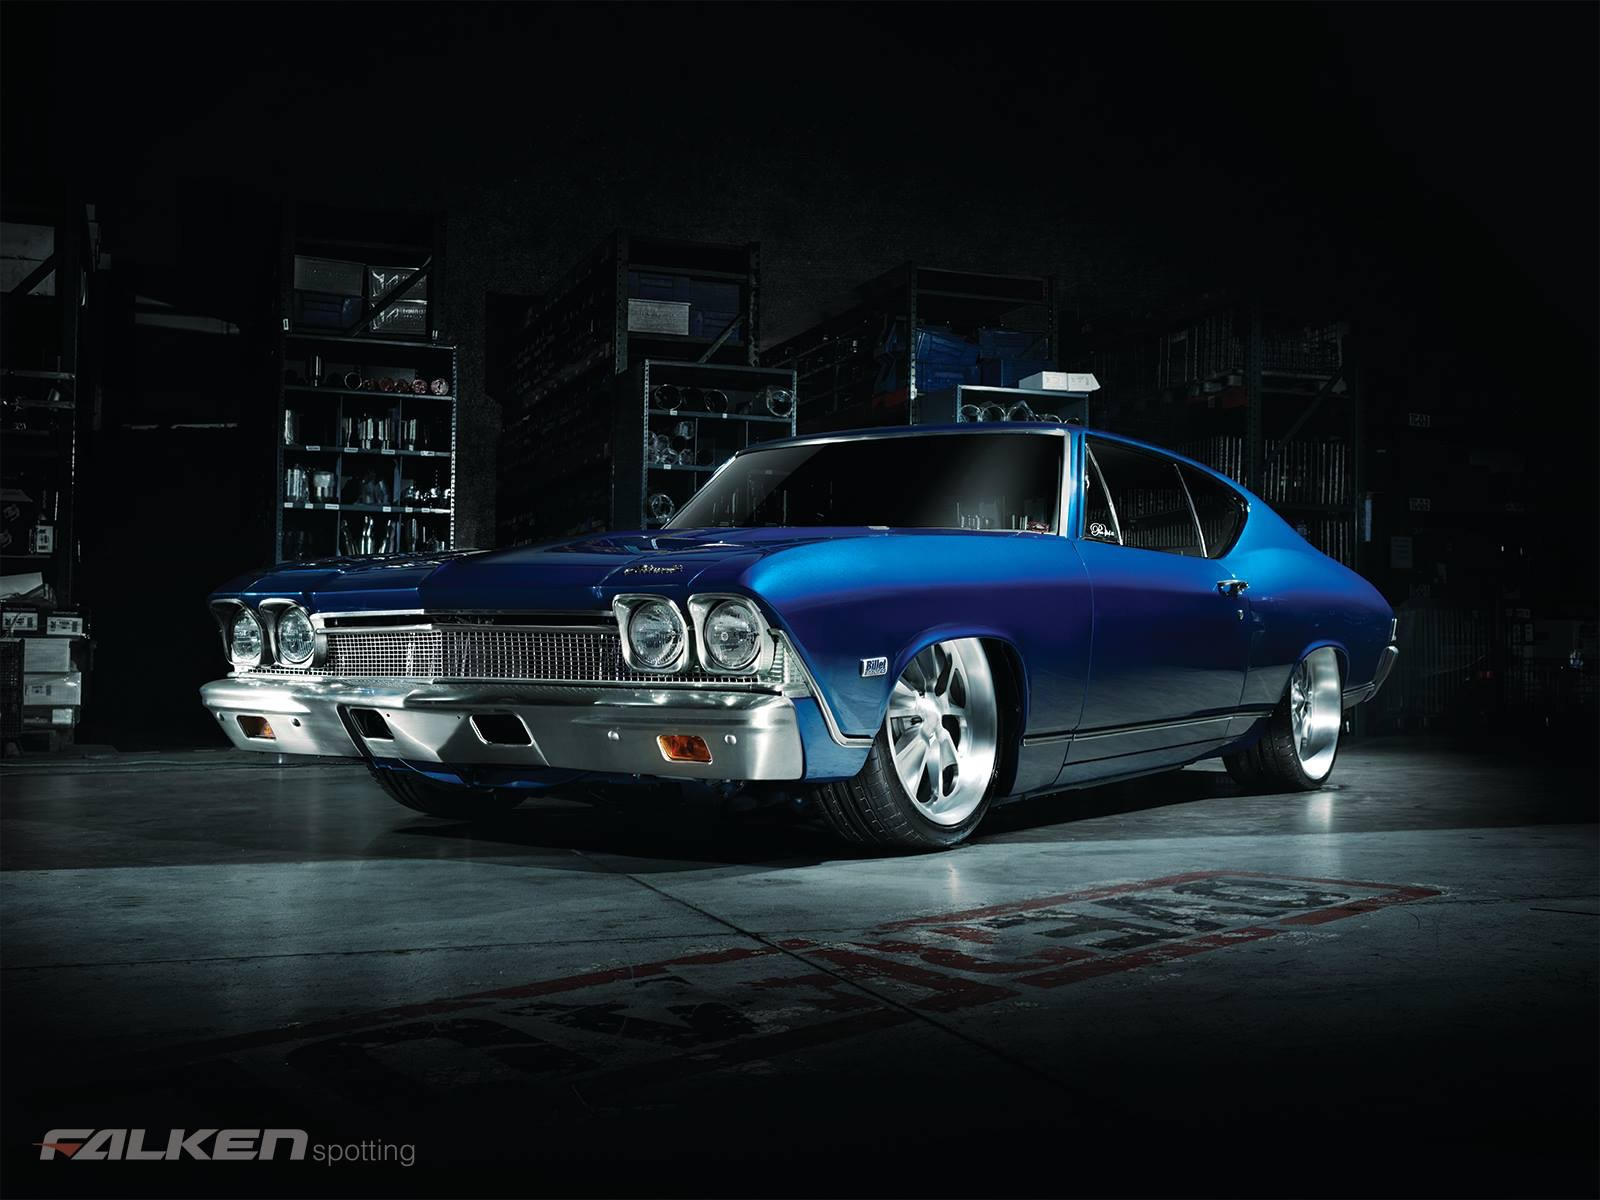 My 68 Chevelle blue eyed devil 1968 chevy malibu Falken tires